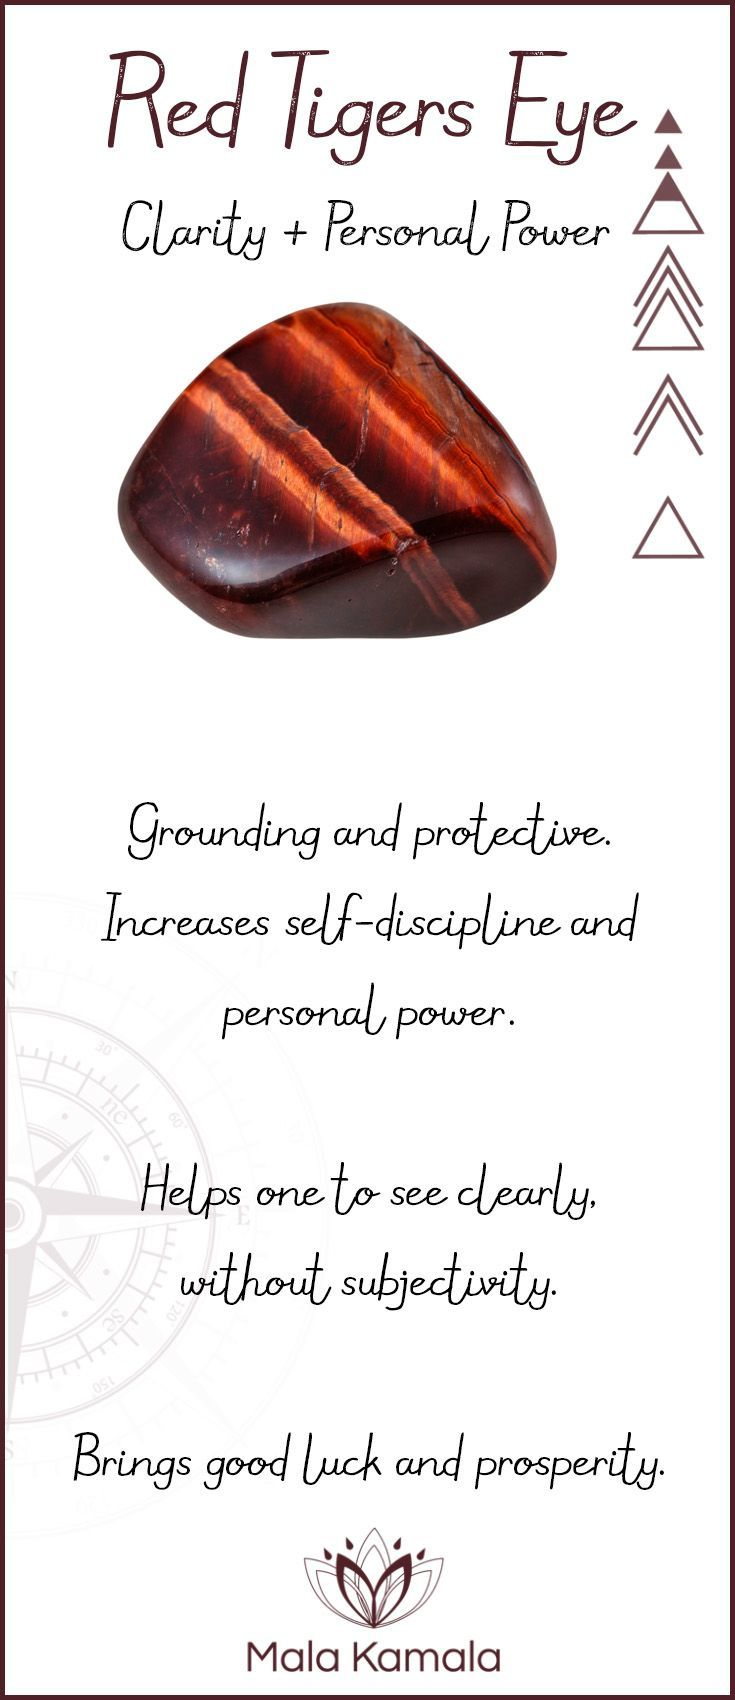 Best 25 gemstones meanings ideas on pinterest crystals and best 25 gemstones meanings ideas on pinterest crystals and gemstones gemstones and healing crystals meaning buycottarizona